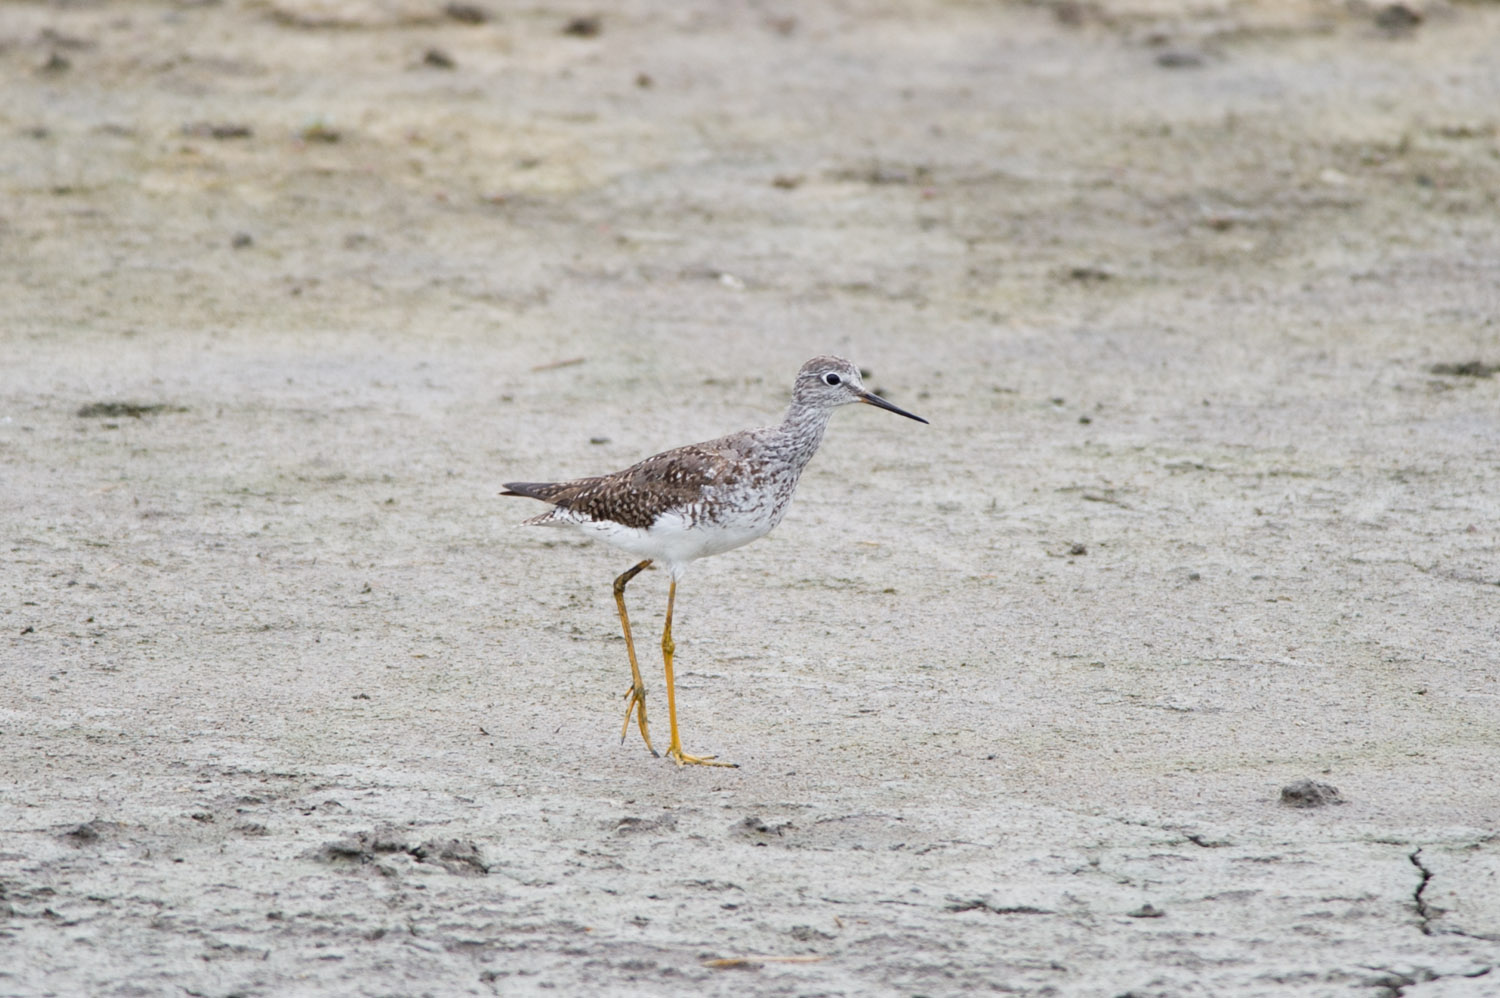 A Greater Yellowlegs walks along the dried mud flats looking for food.